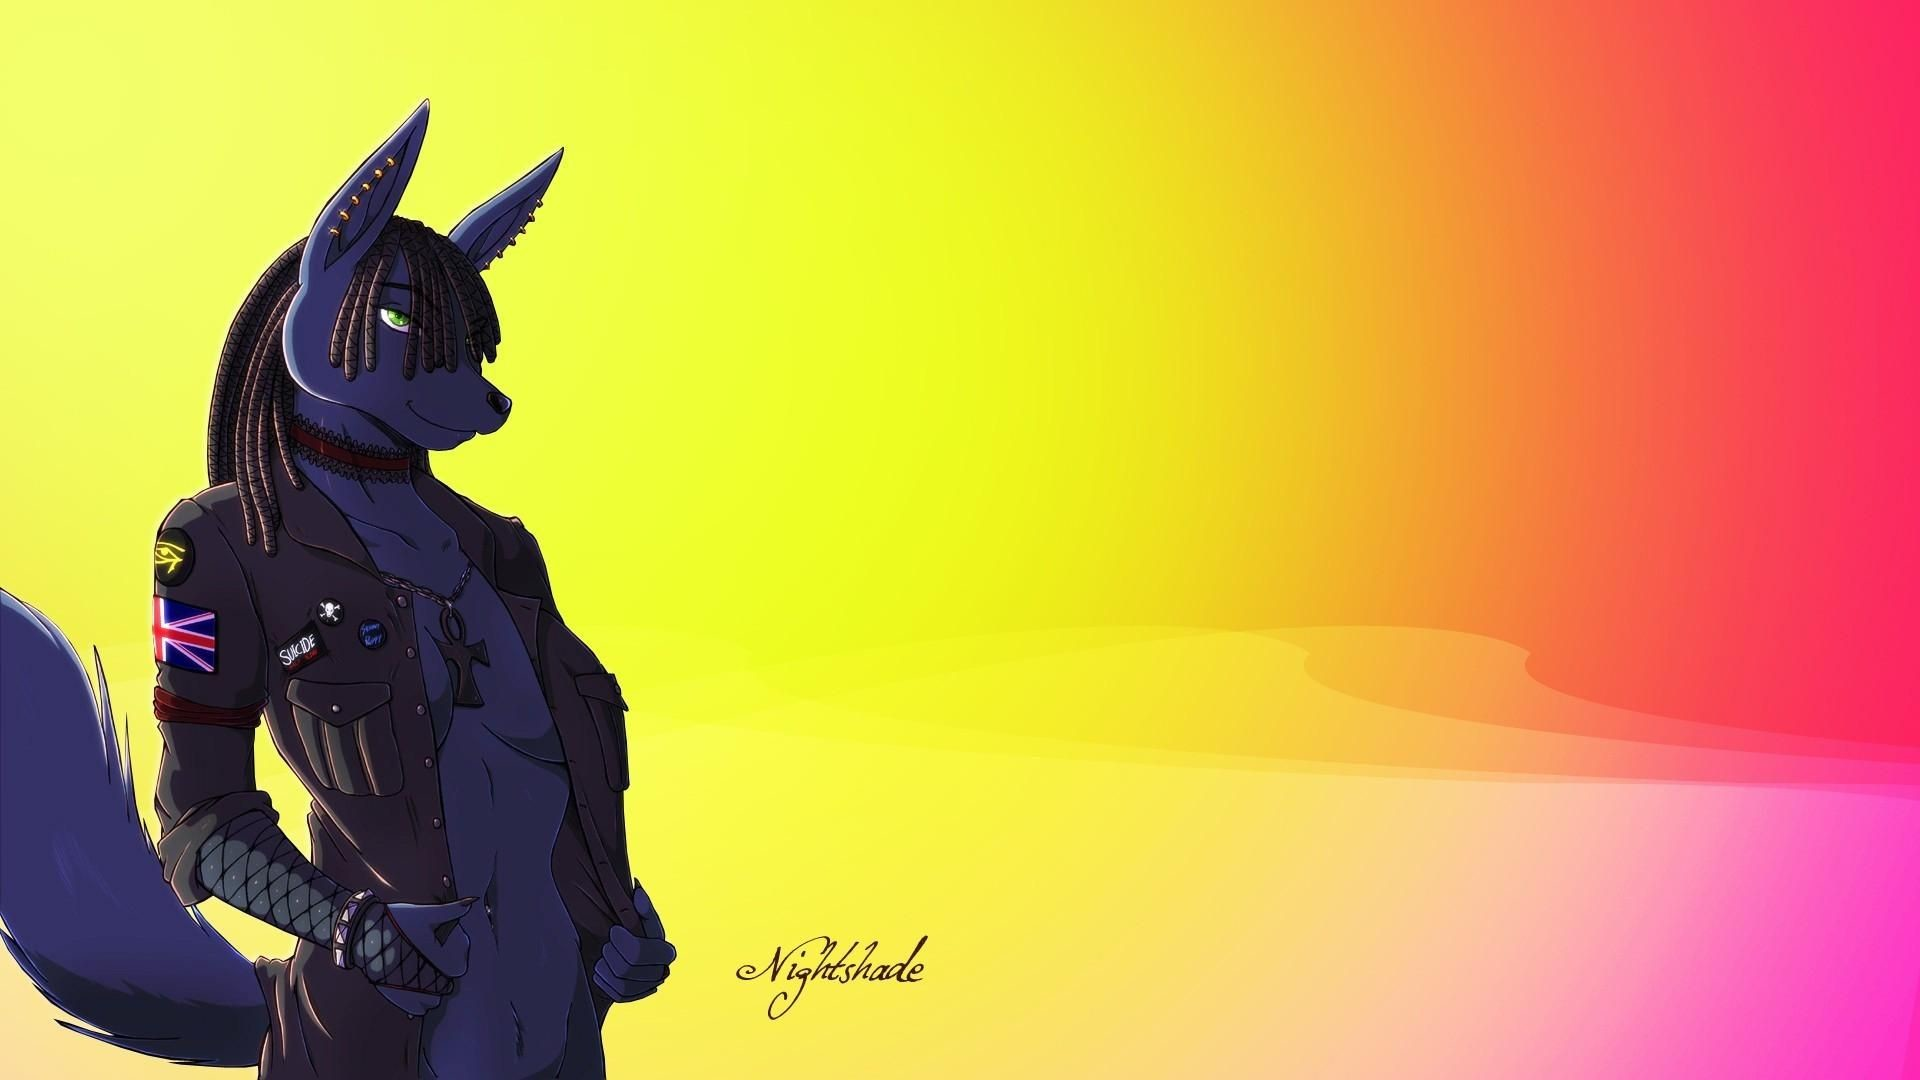 Res: 1920x1080, Wolf Furry Wallpaper Wolf Furry Backgrounds for Desktop